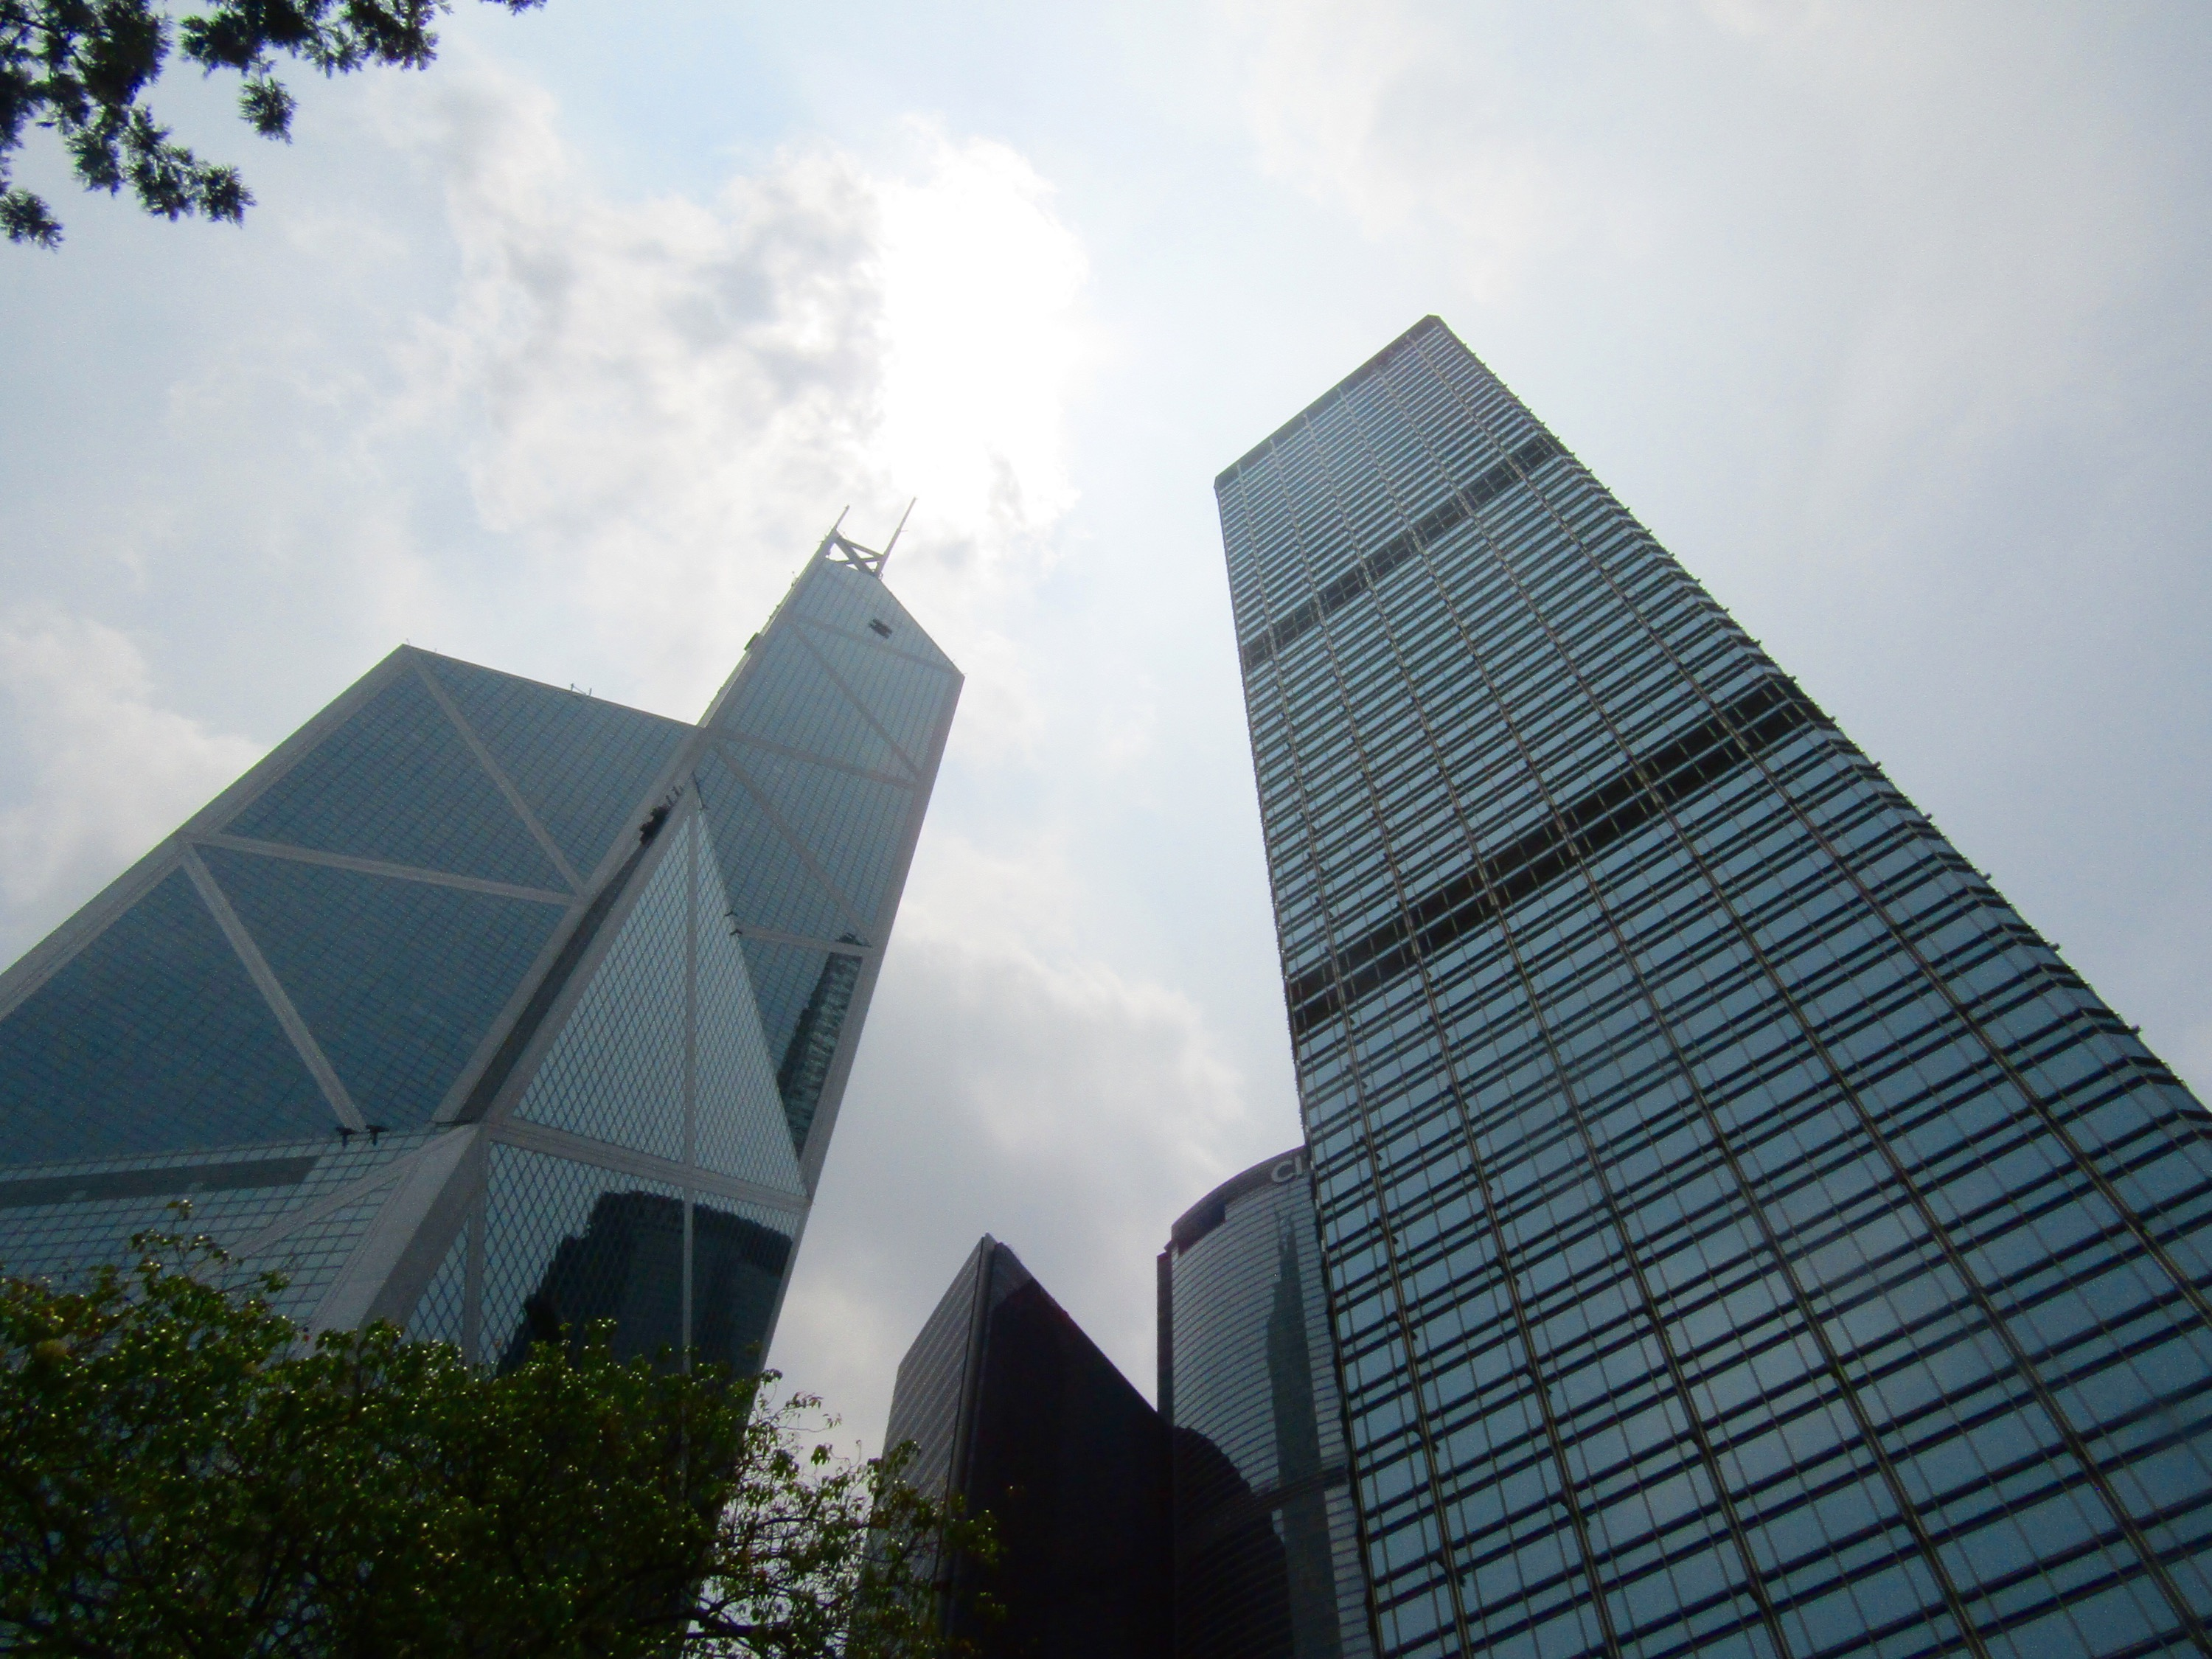 The iconic Bank of China Tower (left) was designed by famous American architect I.M. Pei and was the first building outside of North America to top 1,000 feet. It also is a featured player in the Symphony of Lights show we saw on our first night in HK.